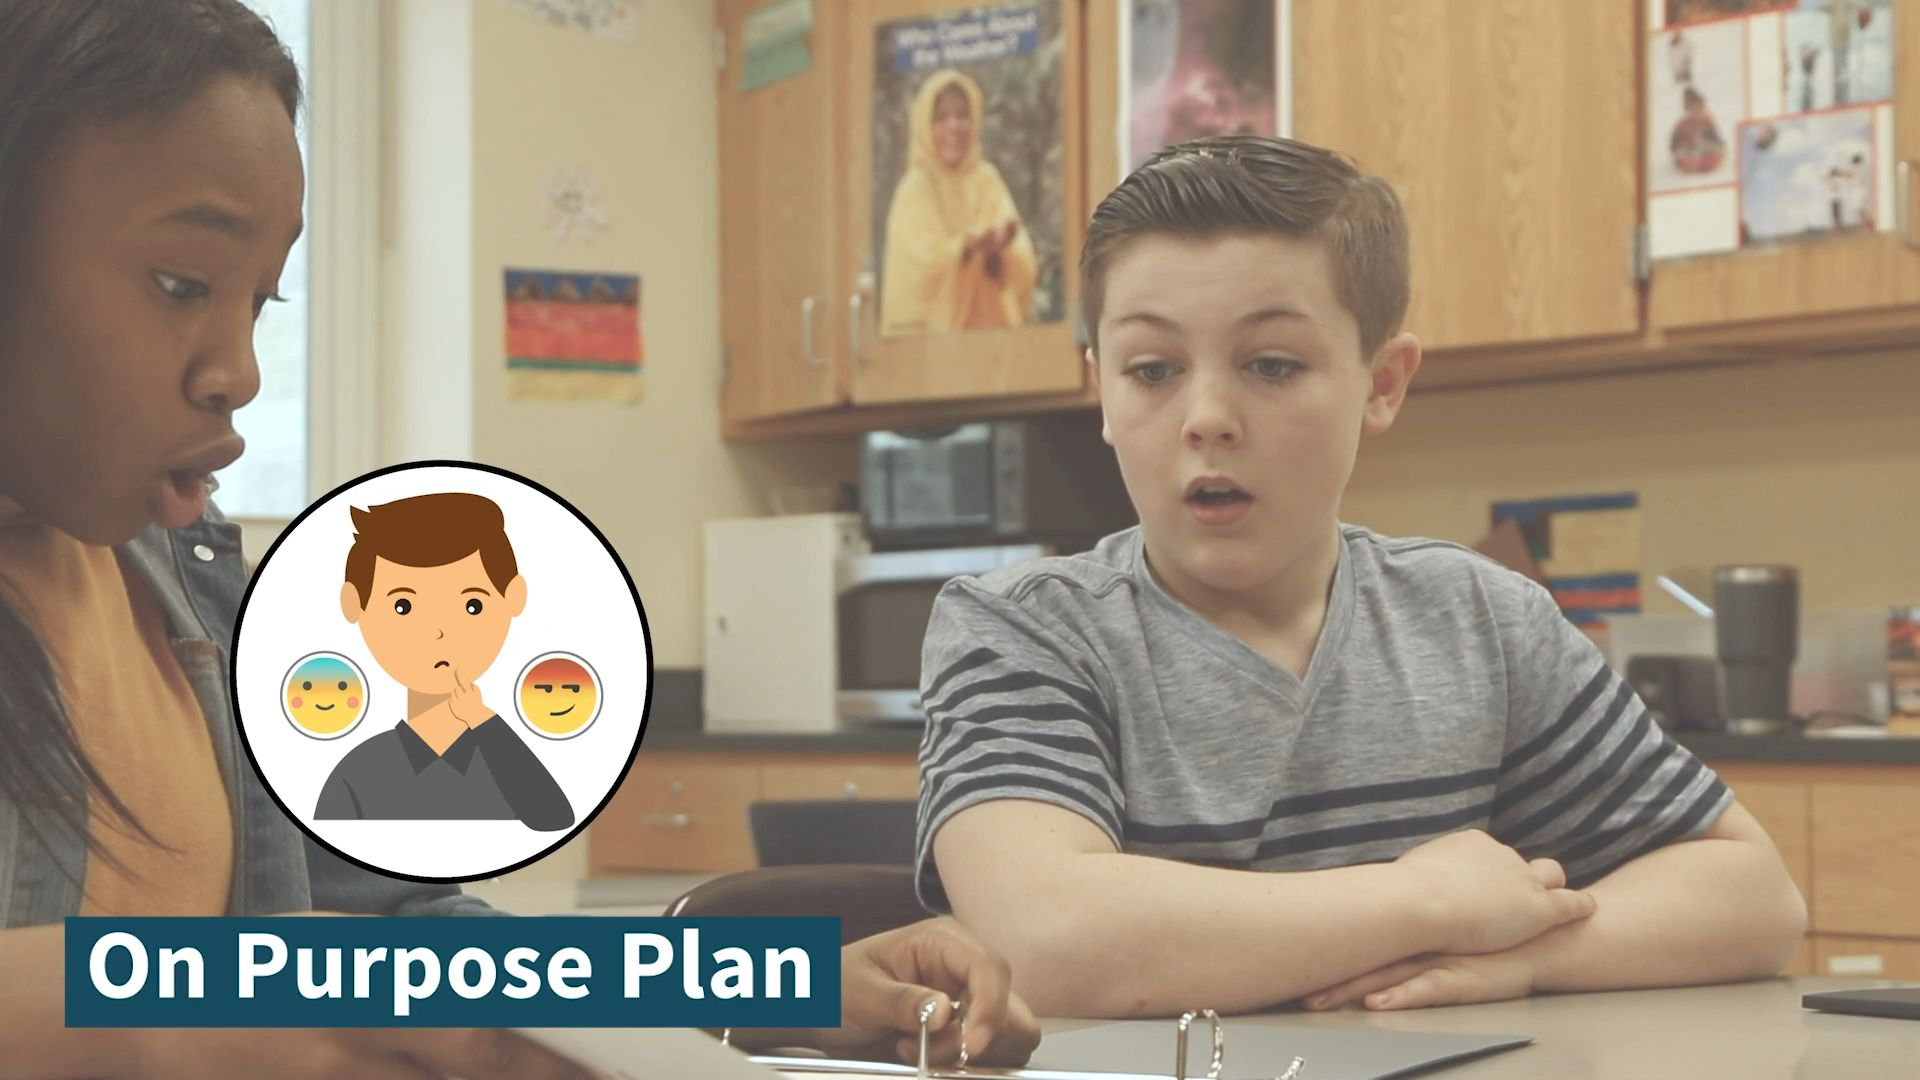 On Purpose Plan Introduction